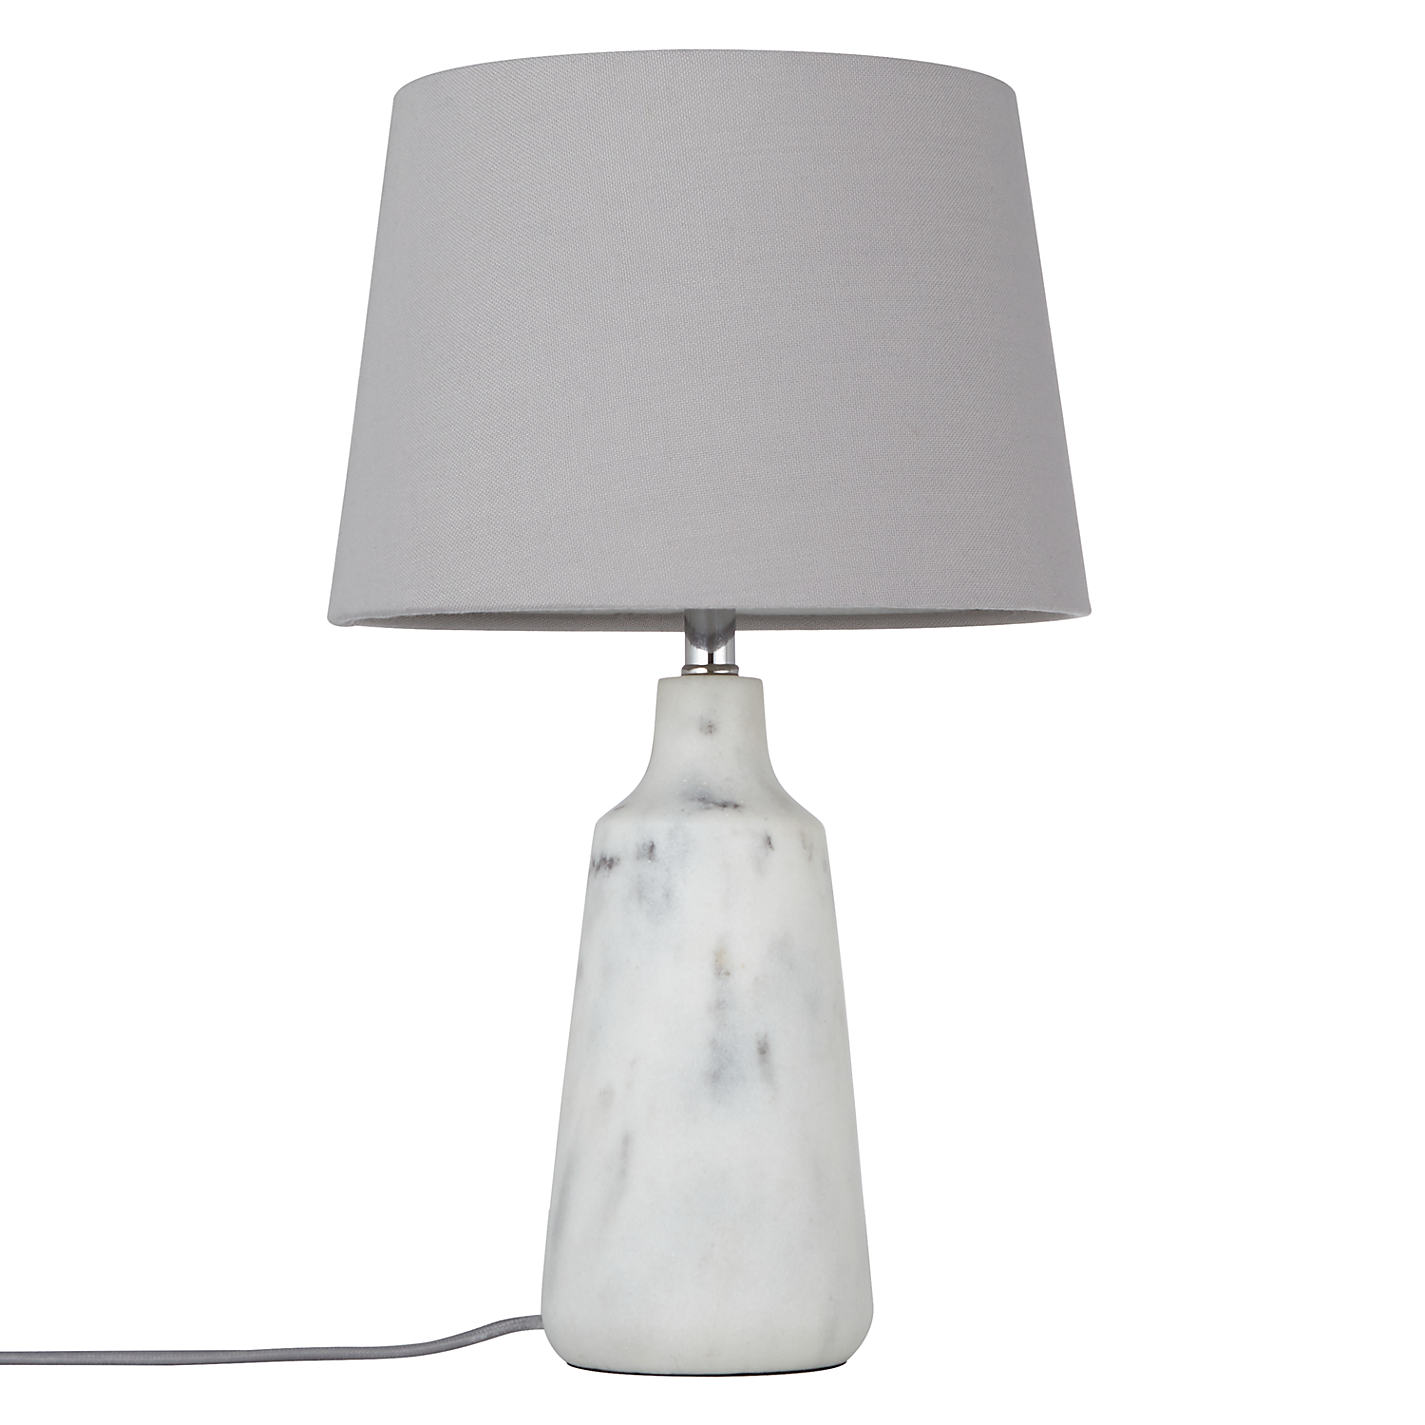 Buy john lewis croft collection linney marble finish table lamp buy john lewis croft collection linney marble finish table lamp online at johnlewis geotapseo Image collections